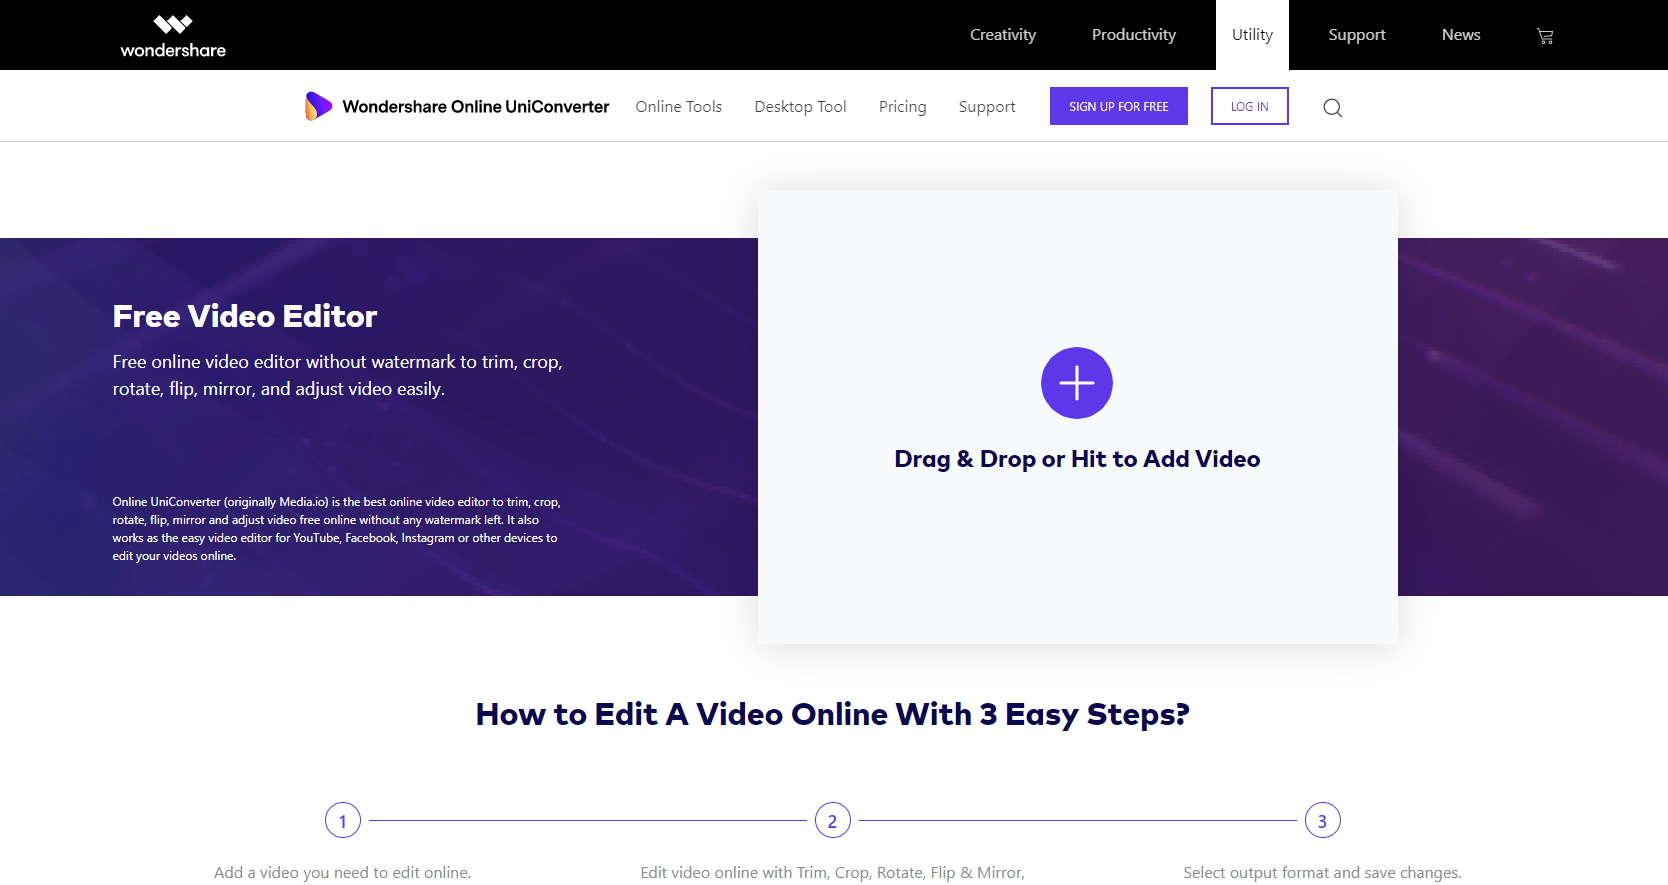 how to lighten a video in Online UniConverter